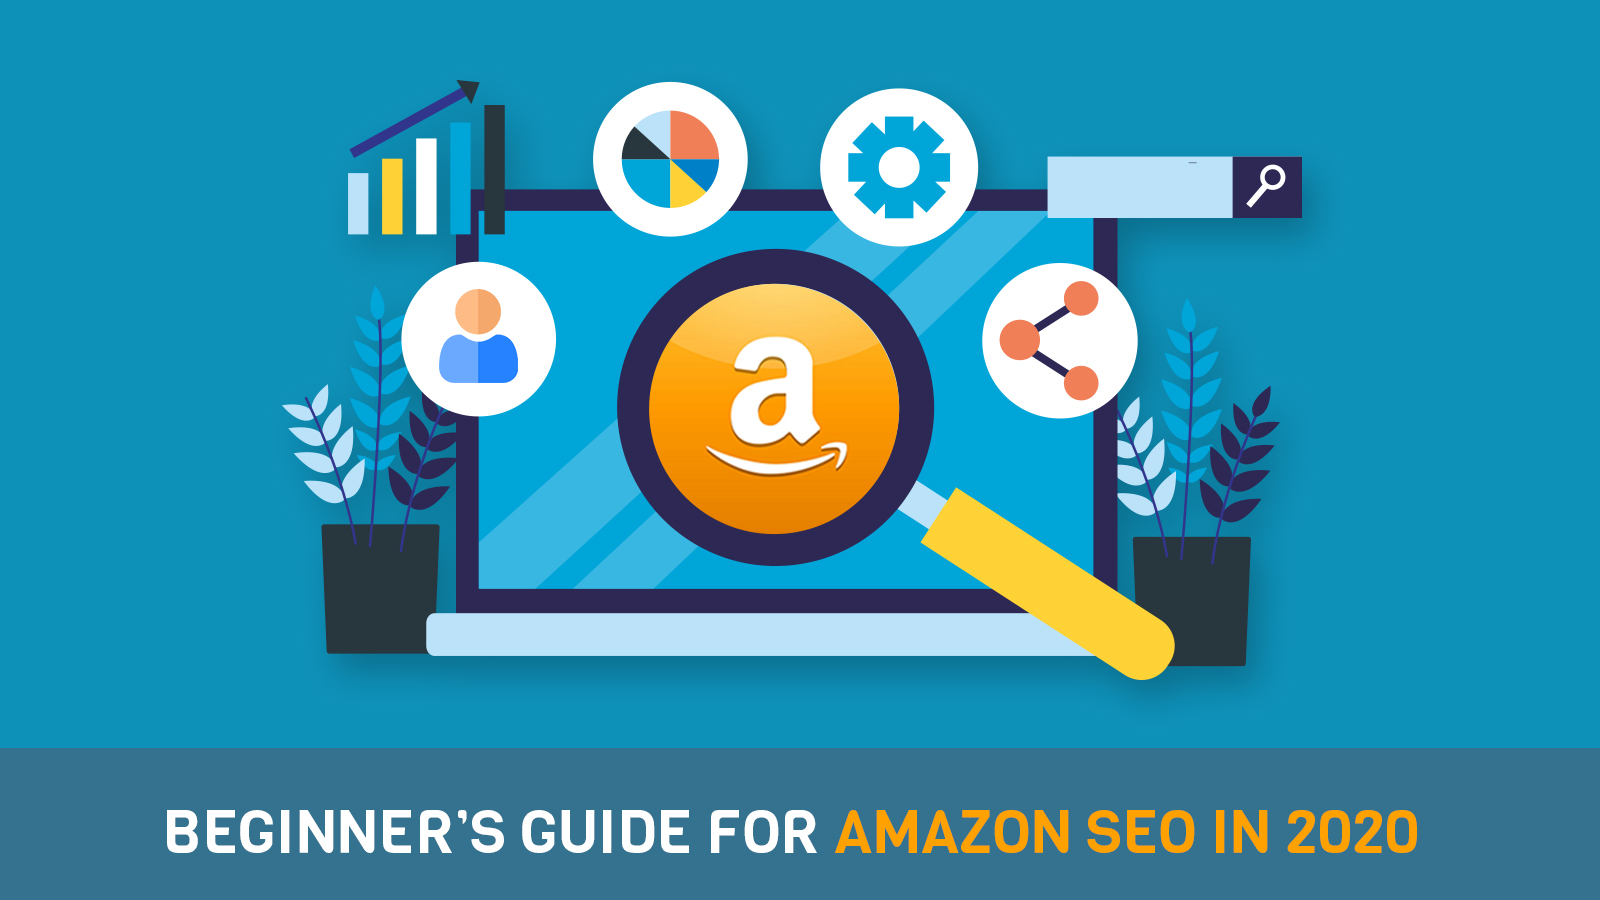 Guide for Amazon SEO